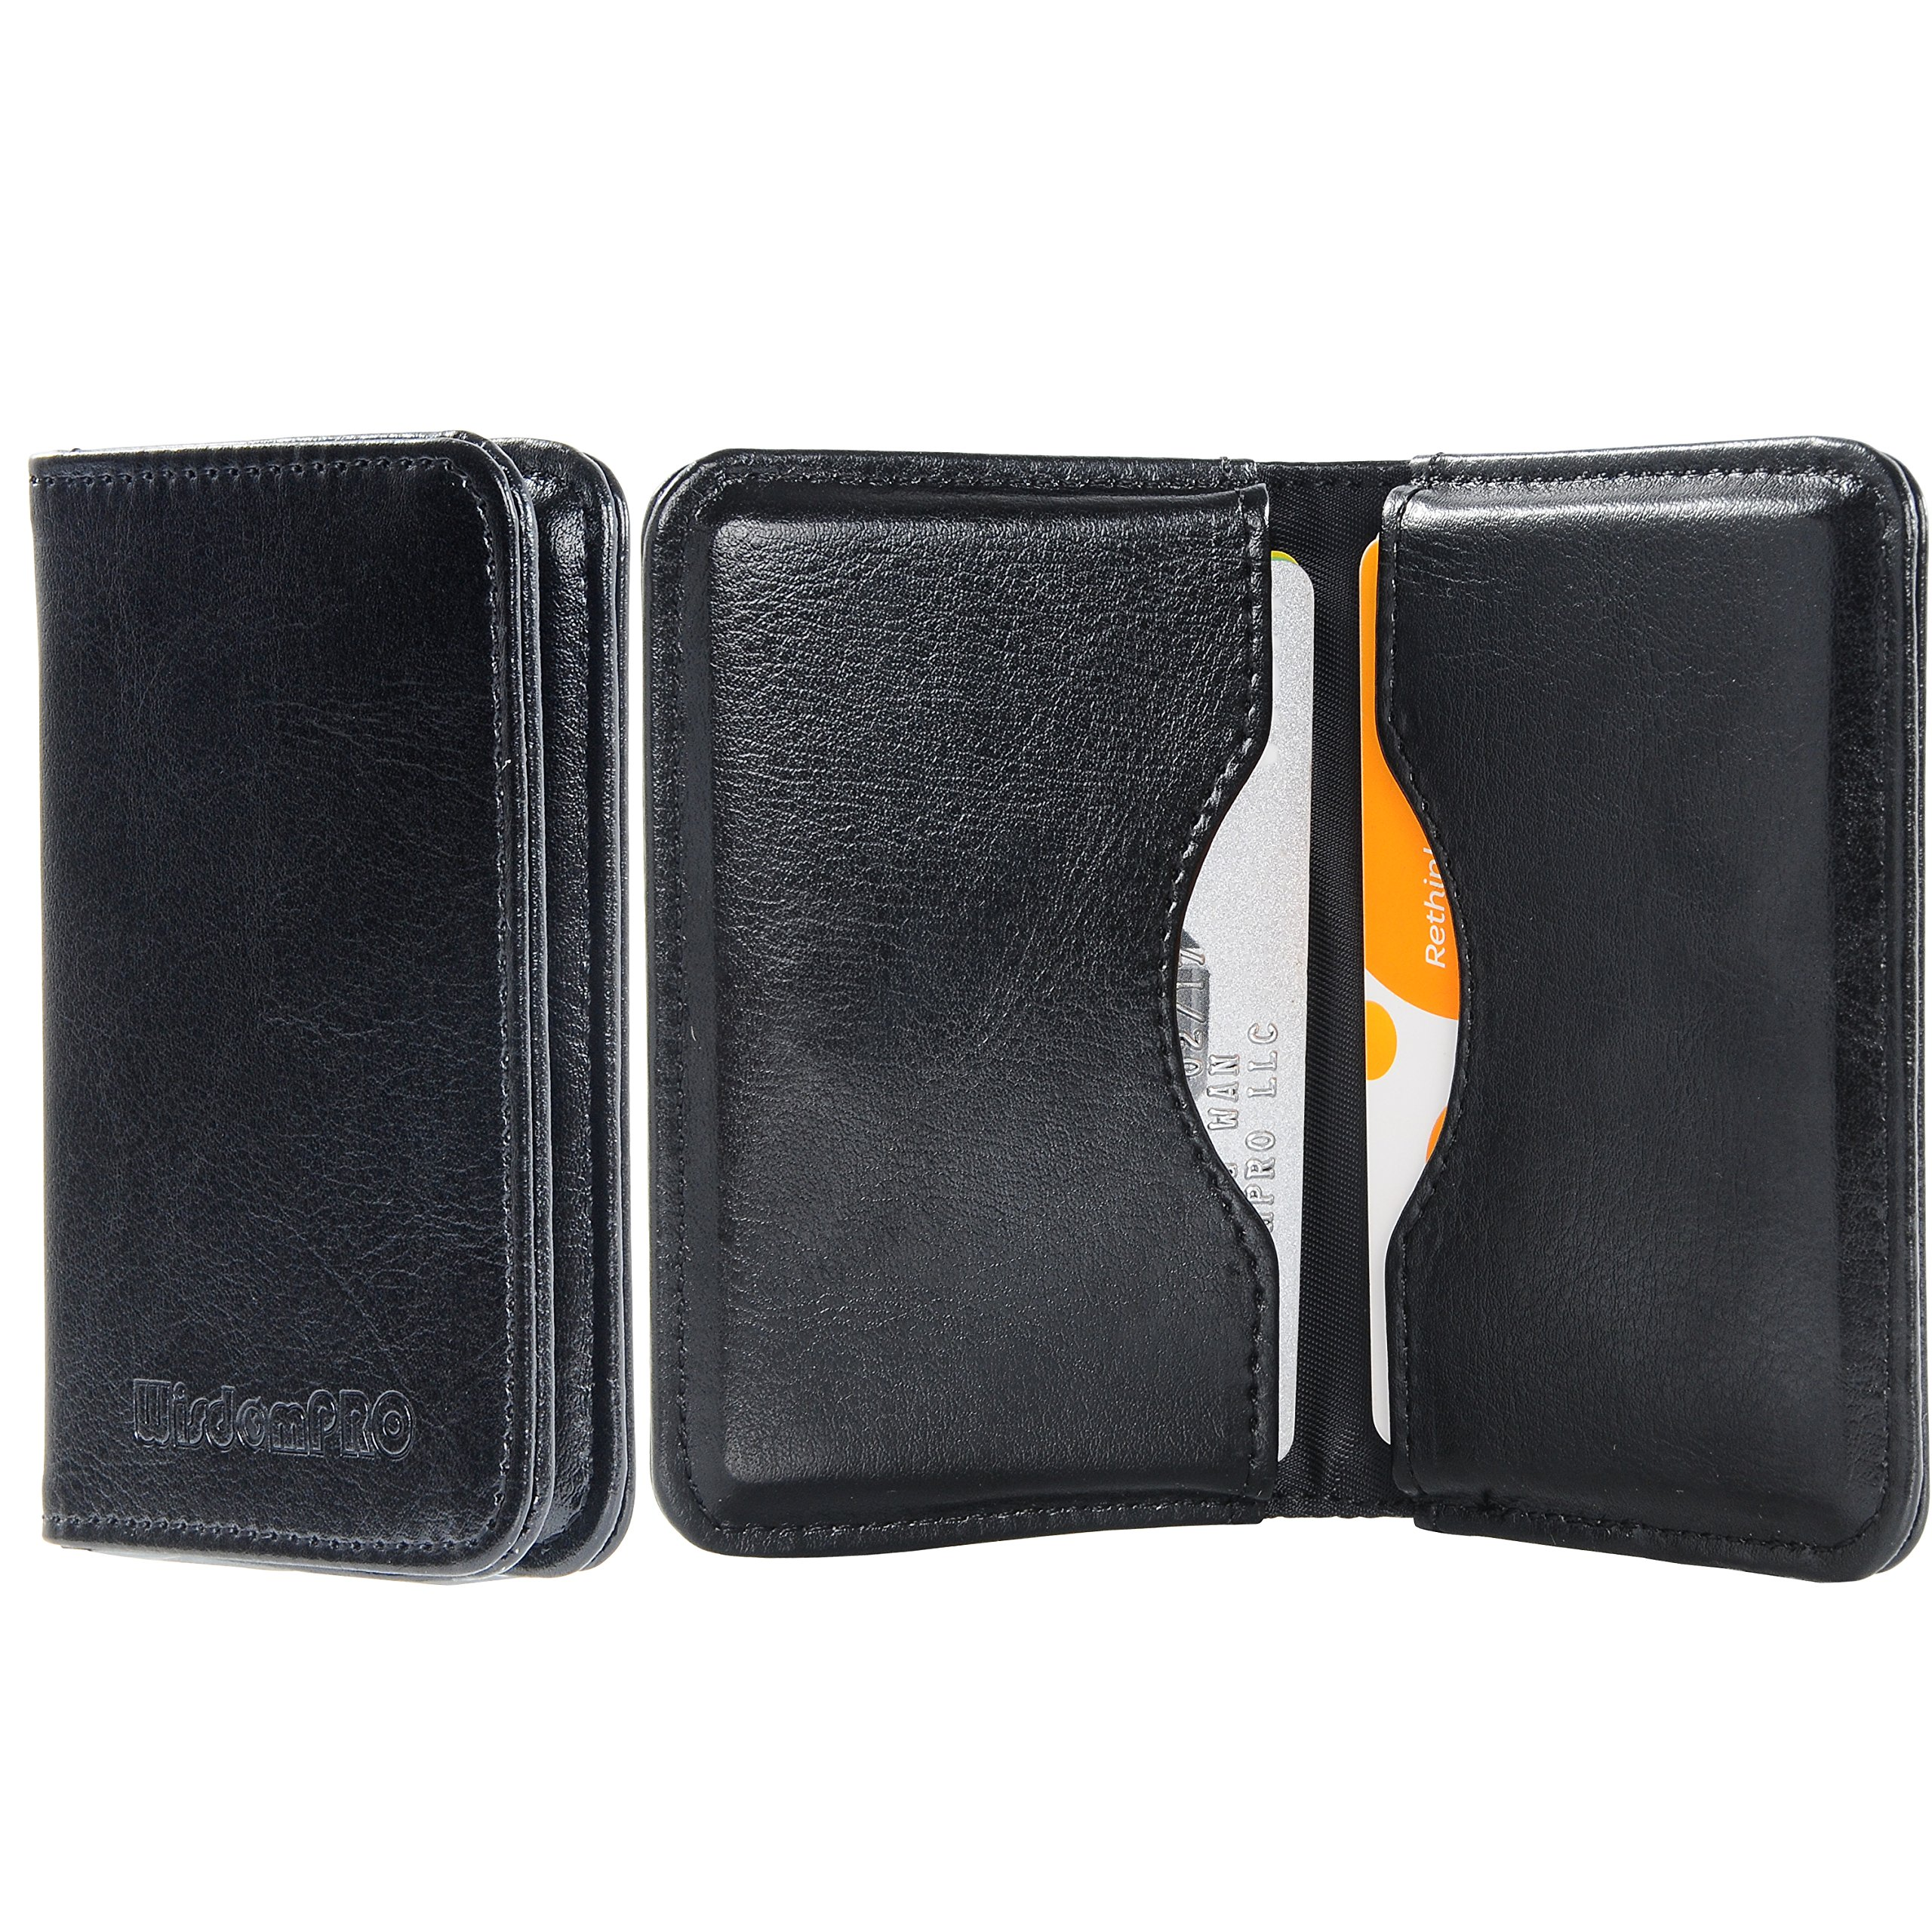 Mens wallet business card holder 2 sided credit card case pocket mens wallet business card holder 2 sided credit card case pocket size organizer reheart Choice Image